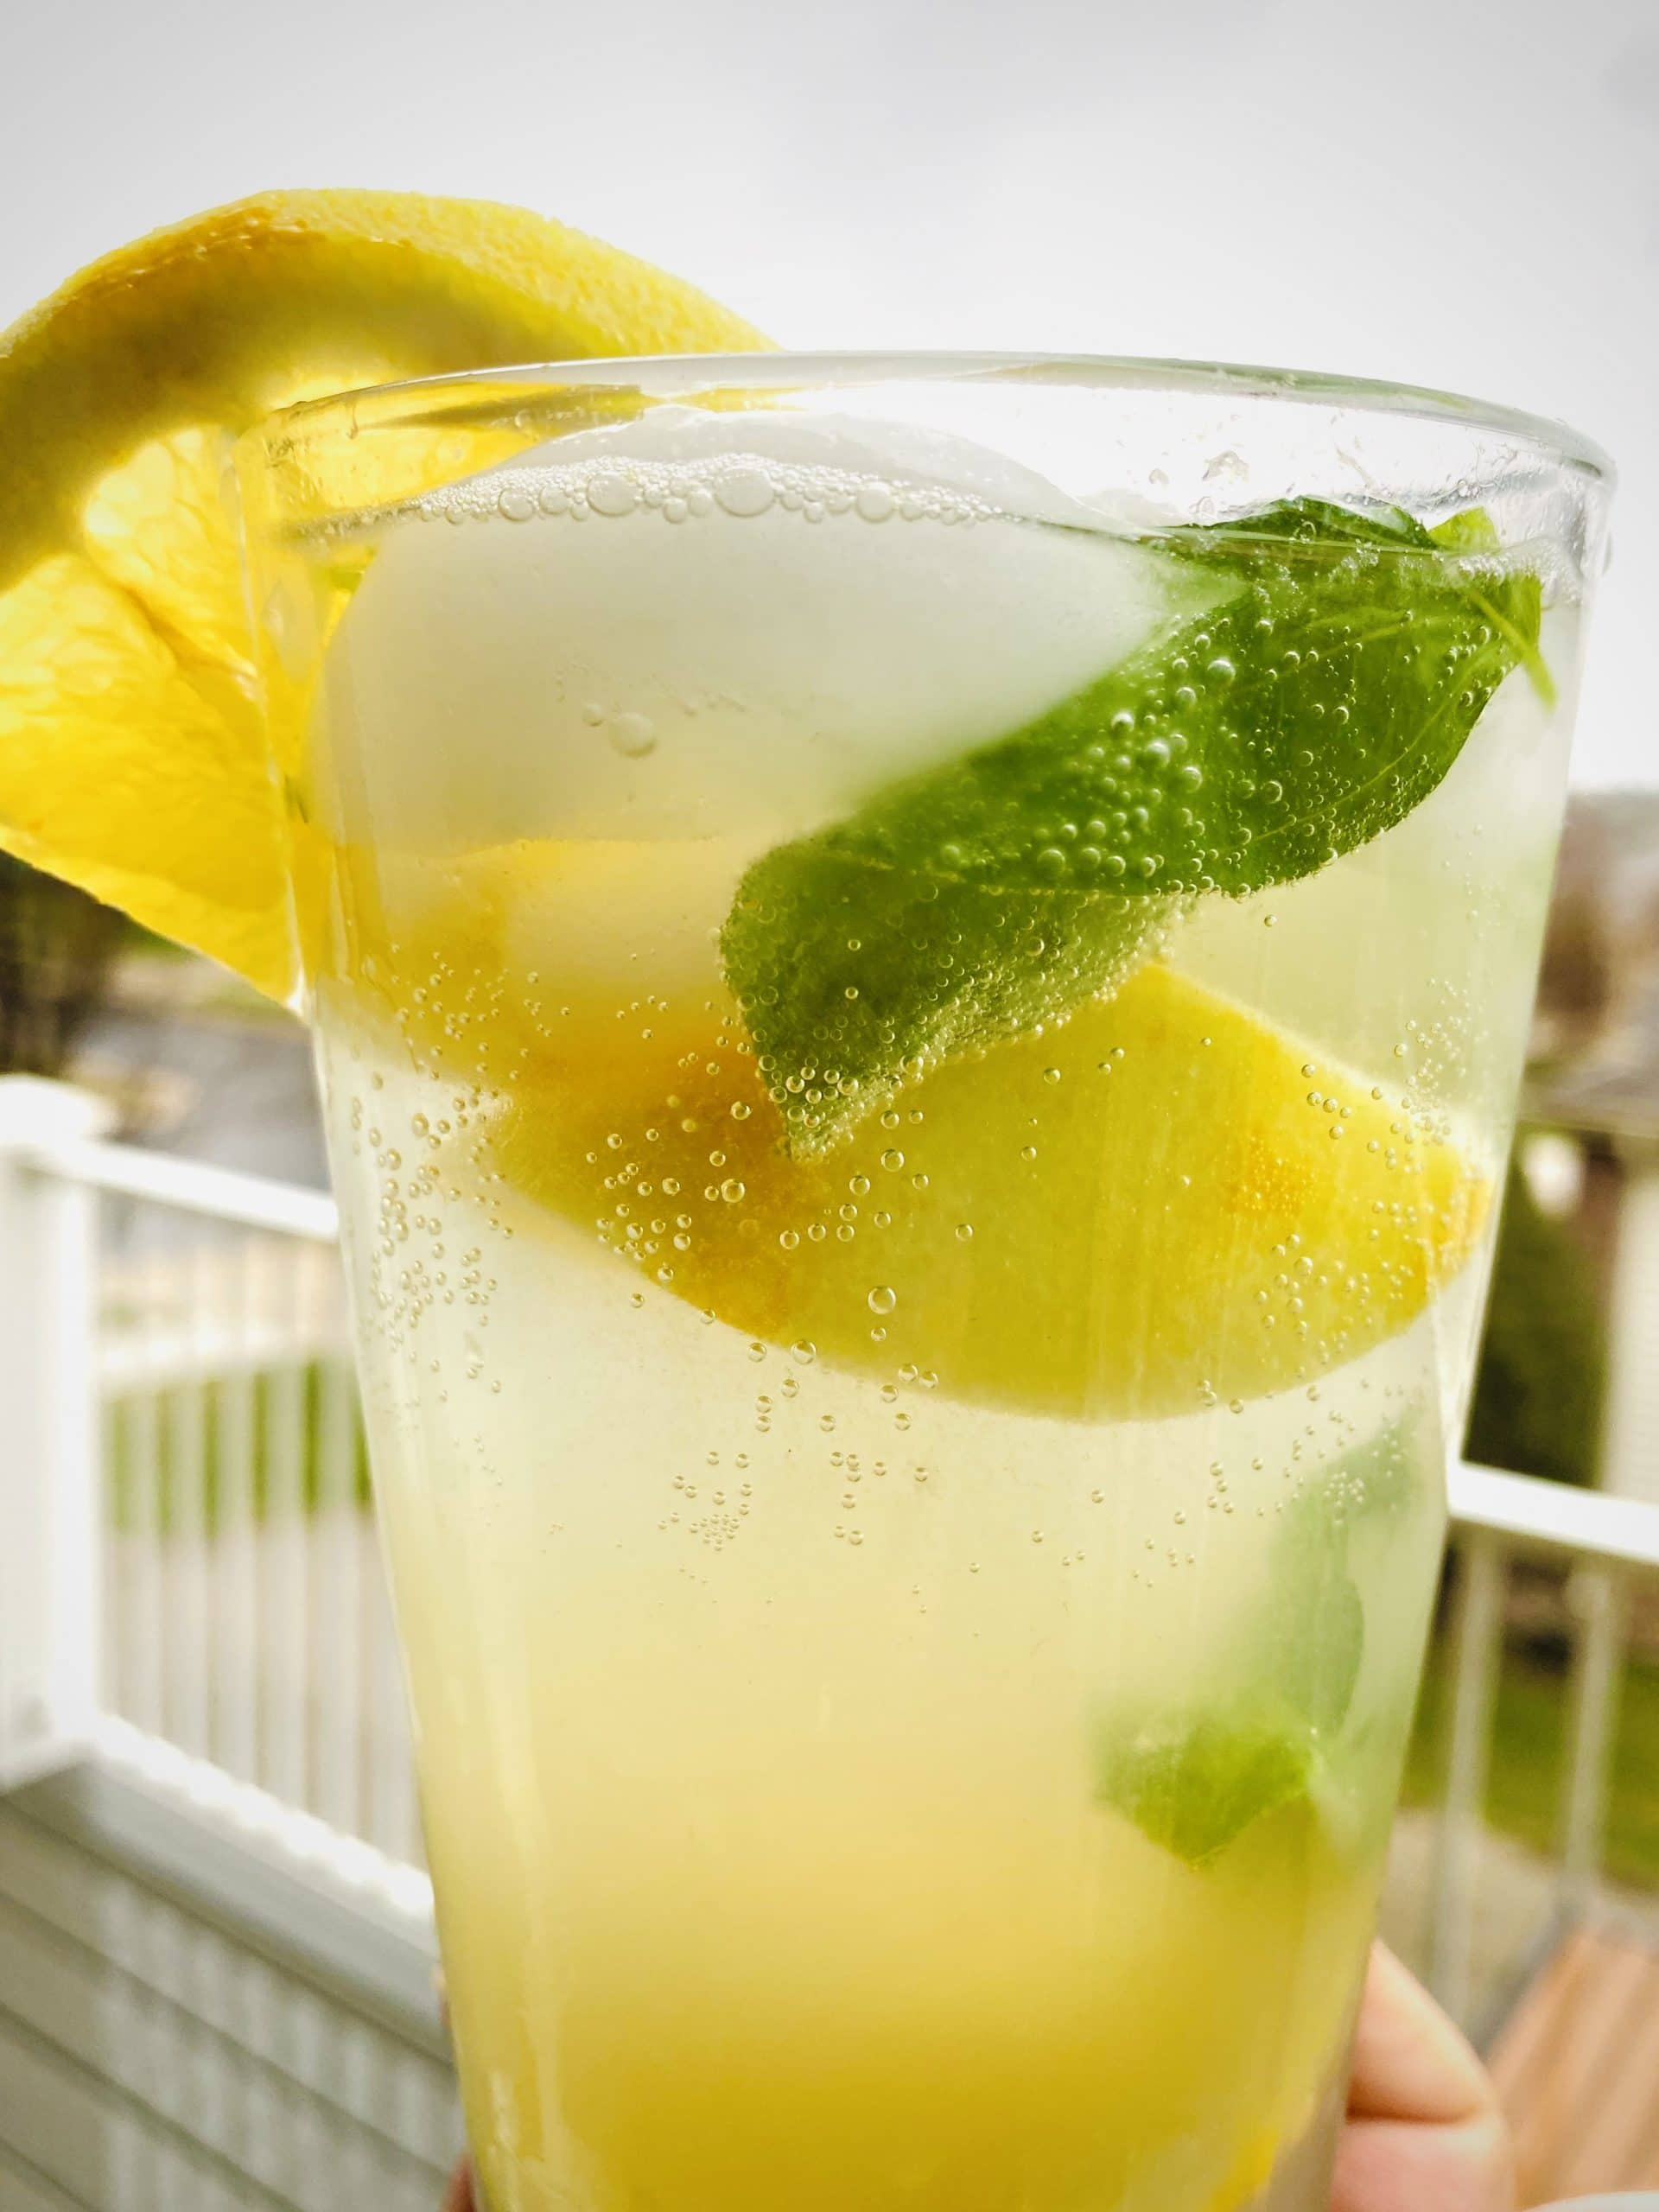 Ginger, Lemongrass & Basil Lemon Soda